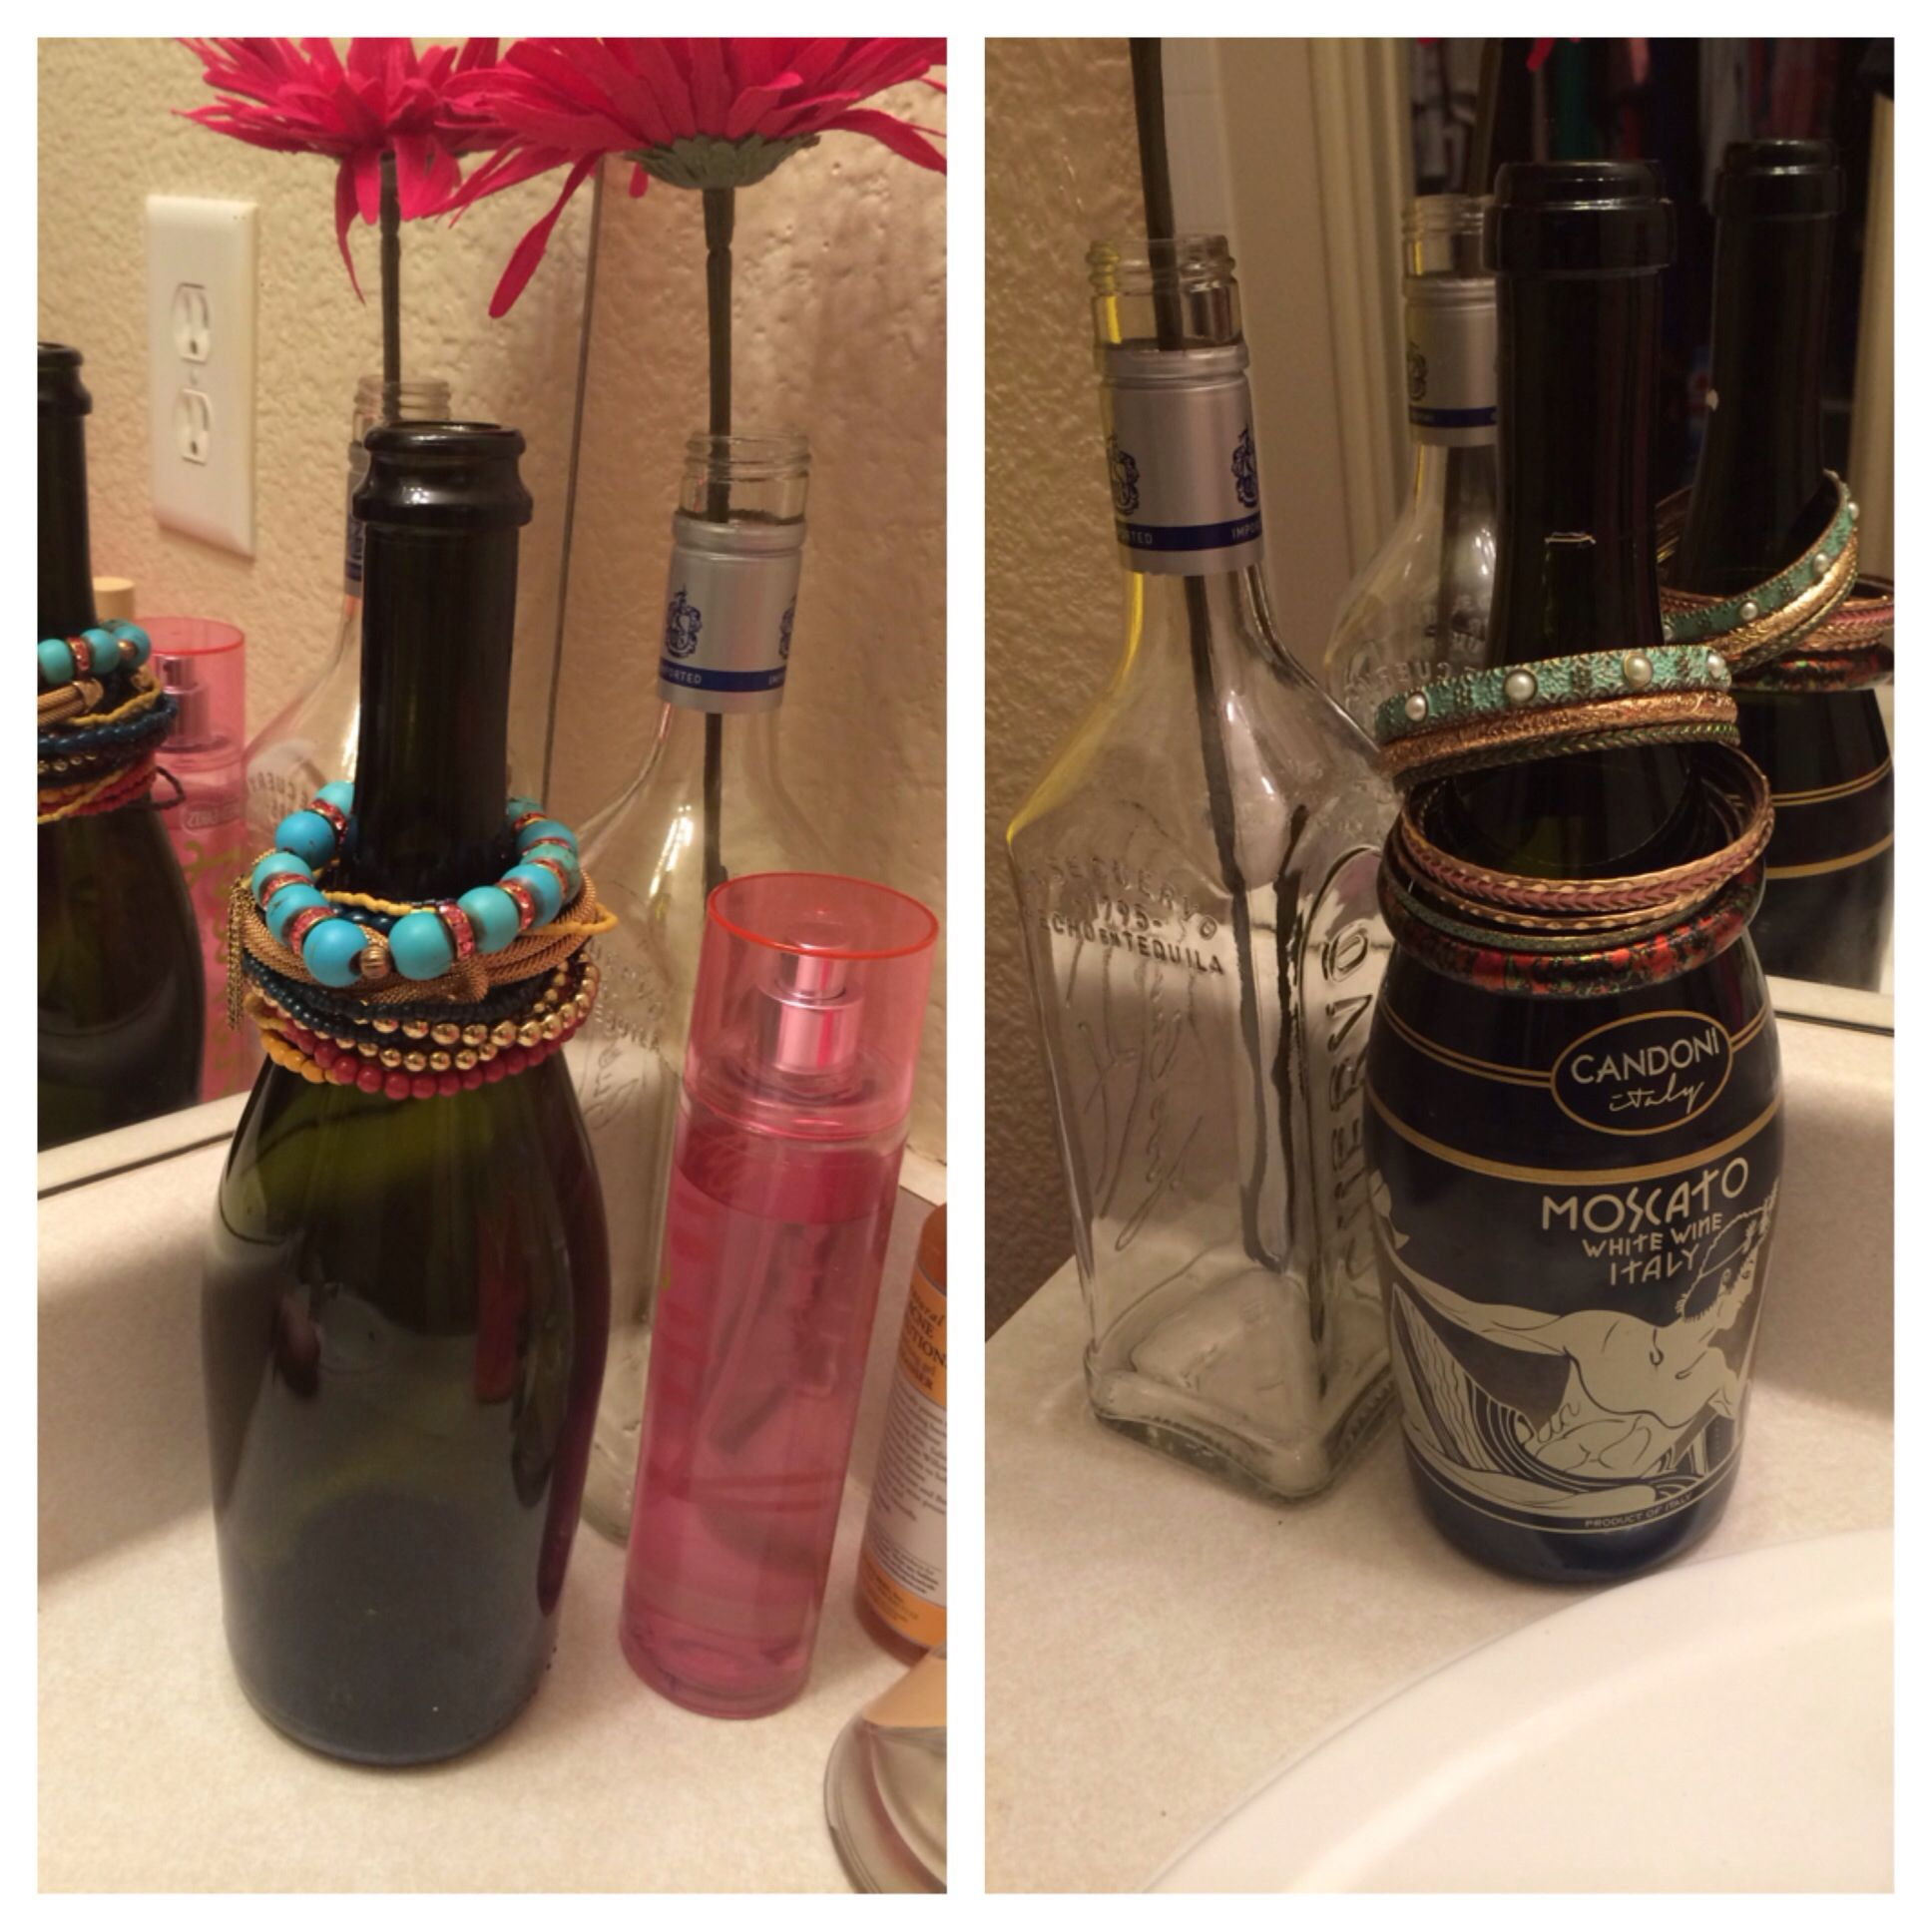 I used wine bottles as bangles and watch holders recycle DIY